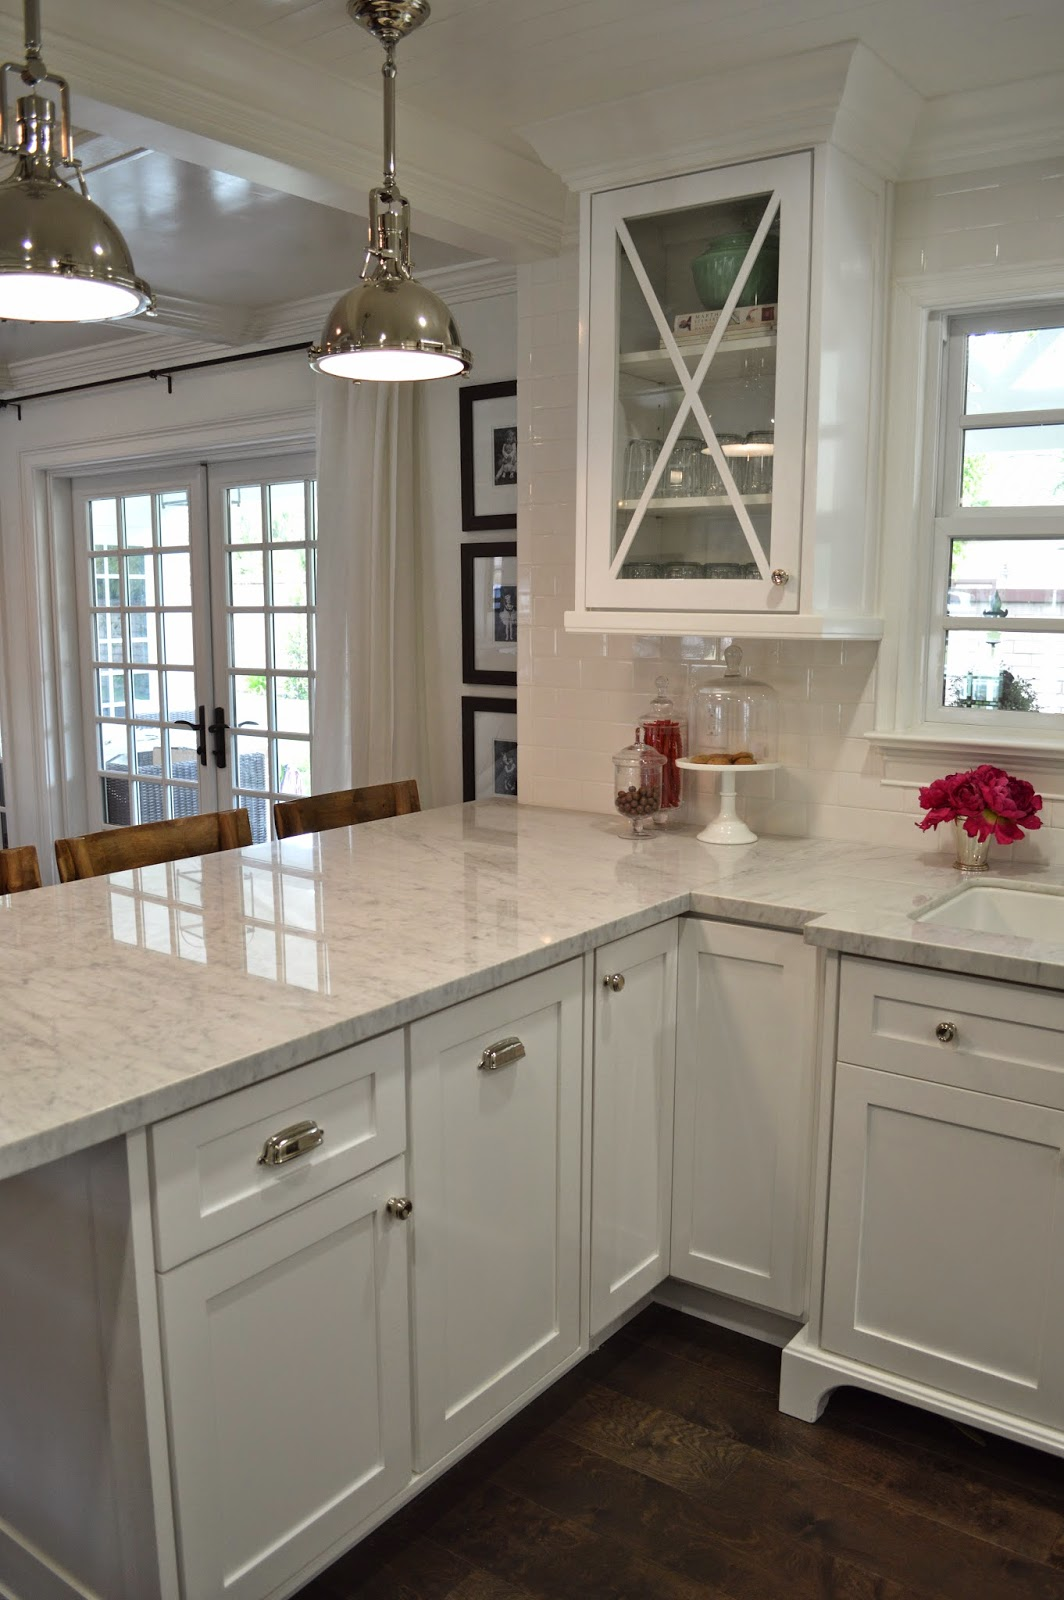 The cape cod ranch renovation great room continued kitchen for Cape cod kitchen design ideas